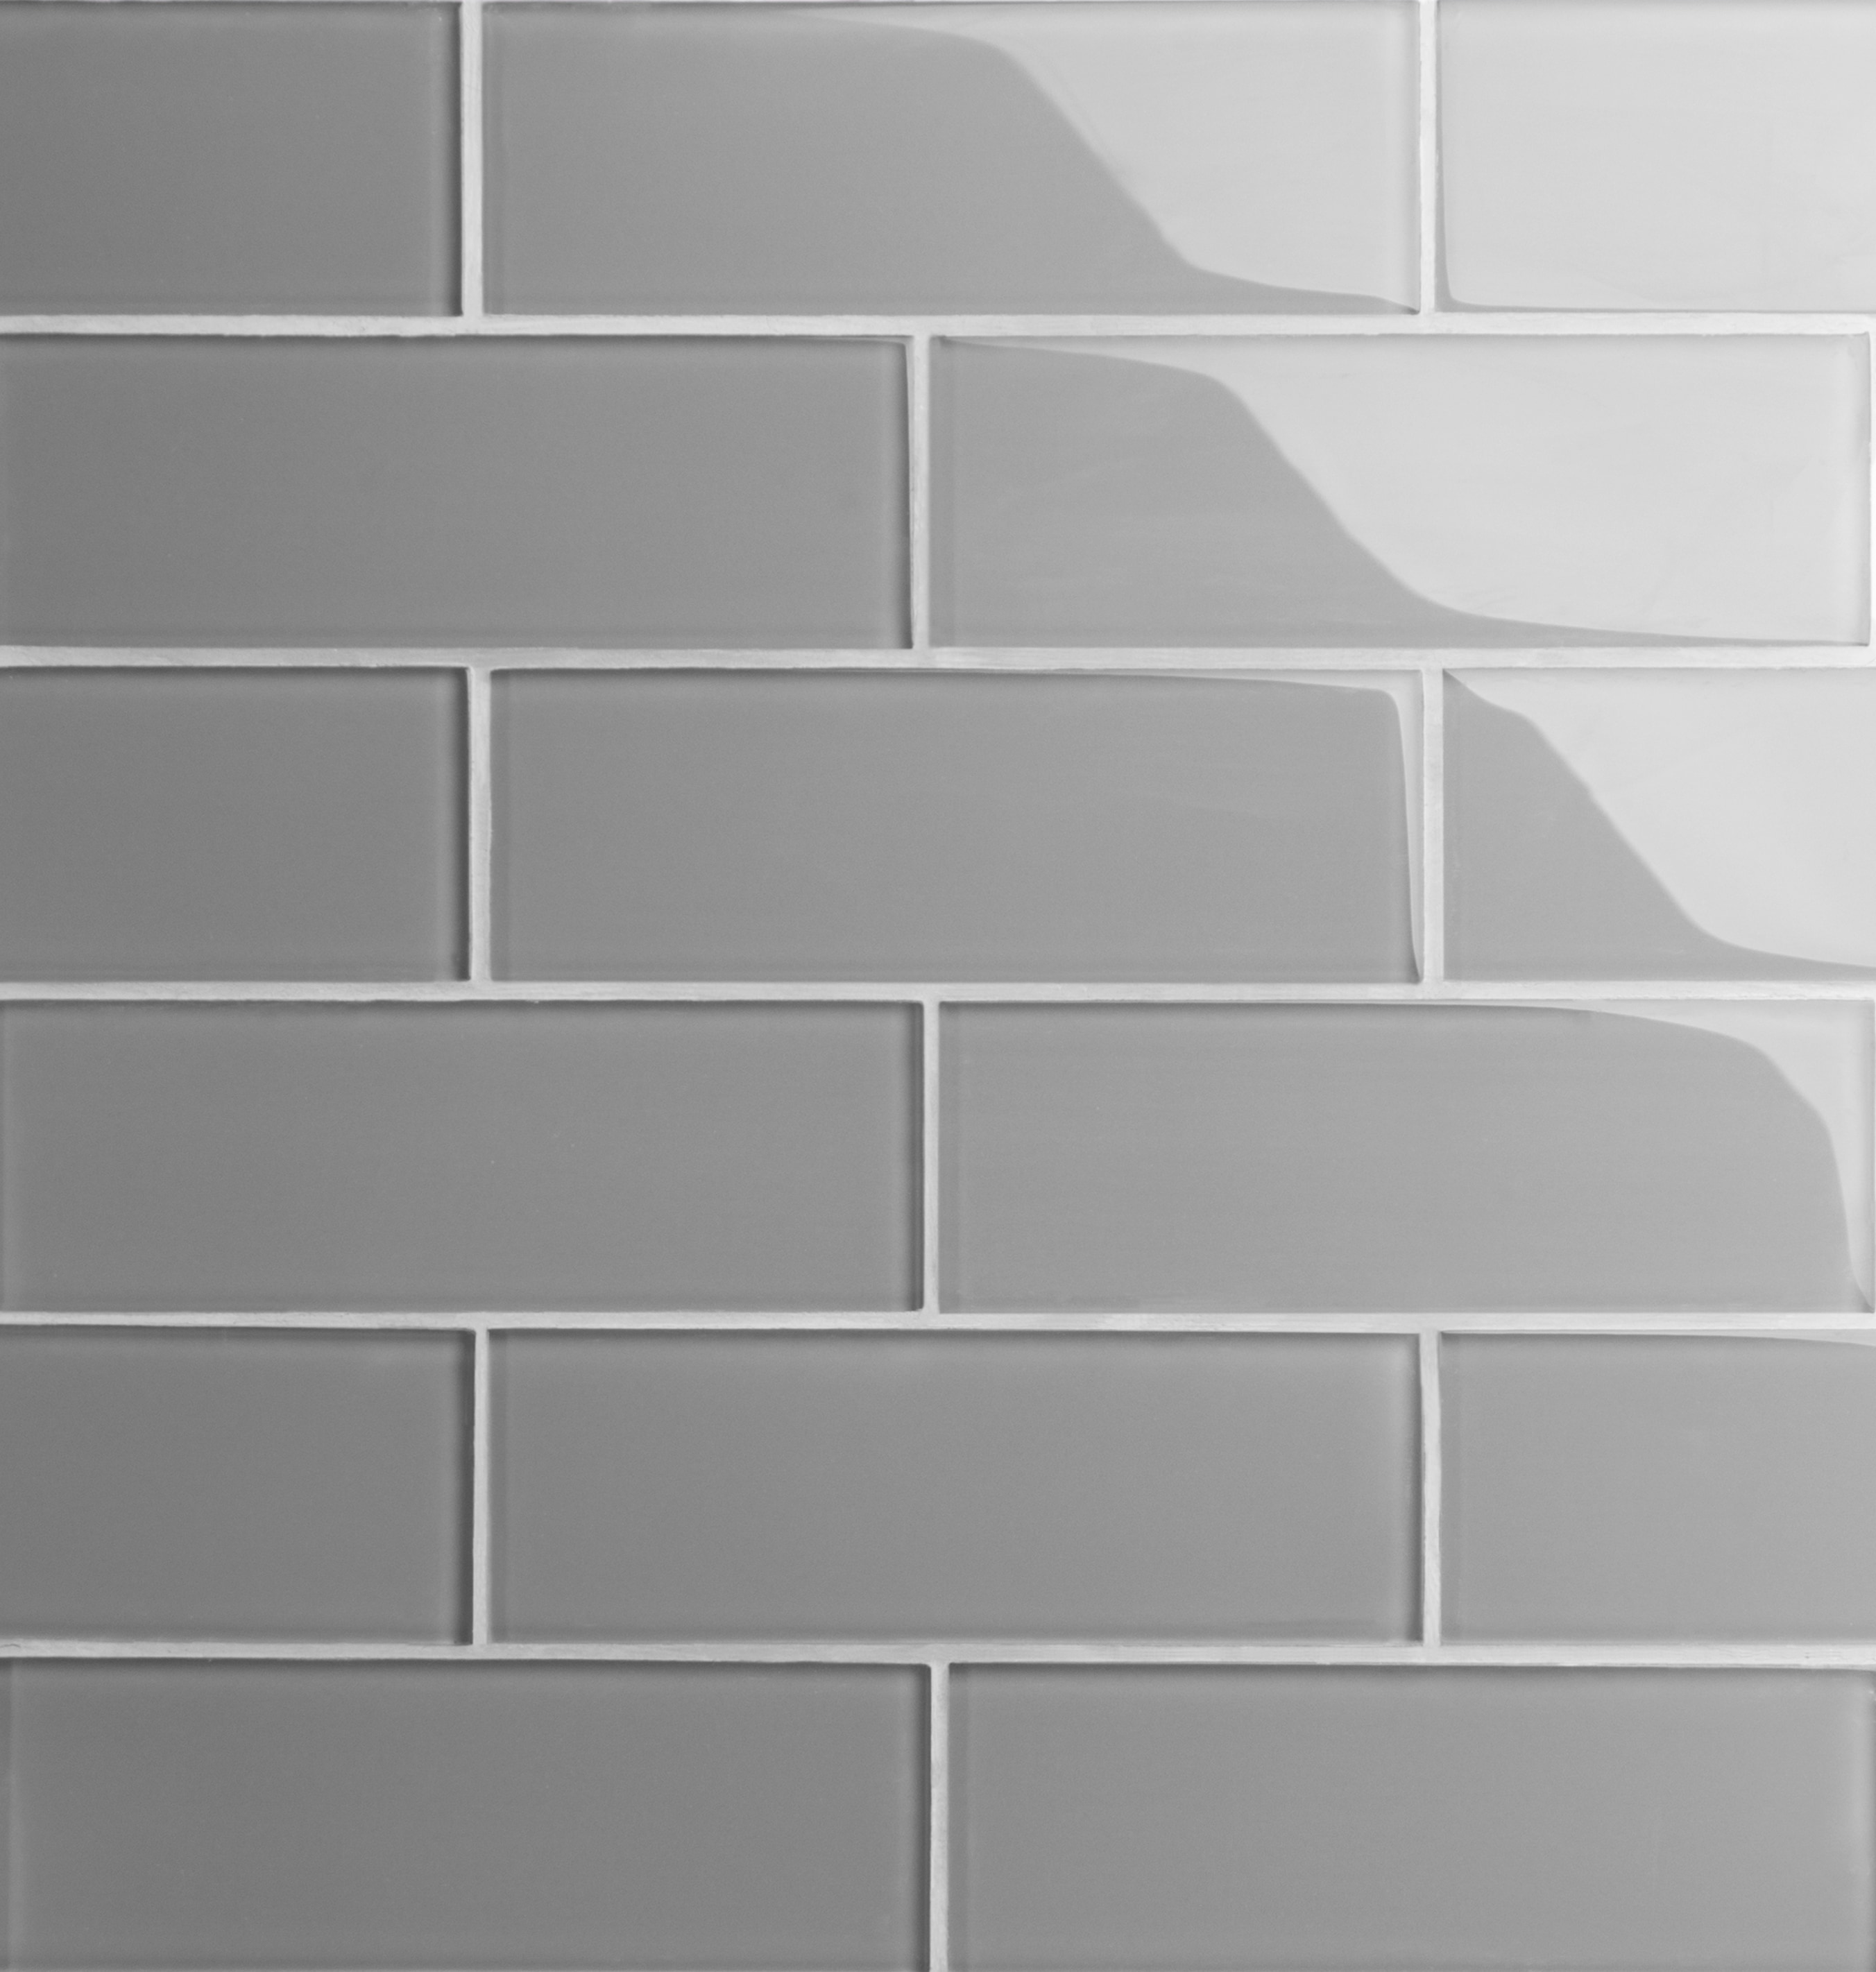 """Glass Subway Tile / 3 x 9 x 0.31 inches / Glossy Individual 3"""" x 9"""" Glass Subway Tile in Dark Gray 0"""